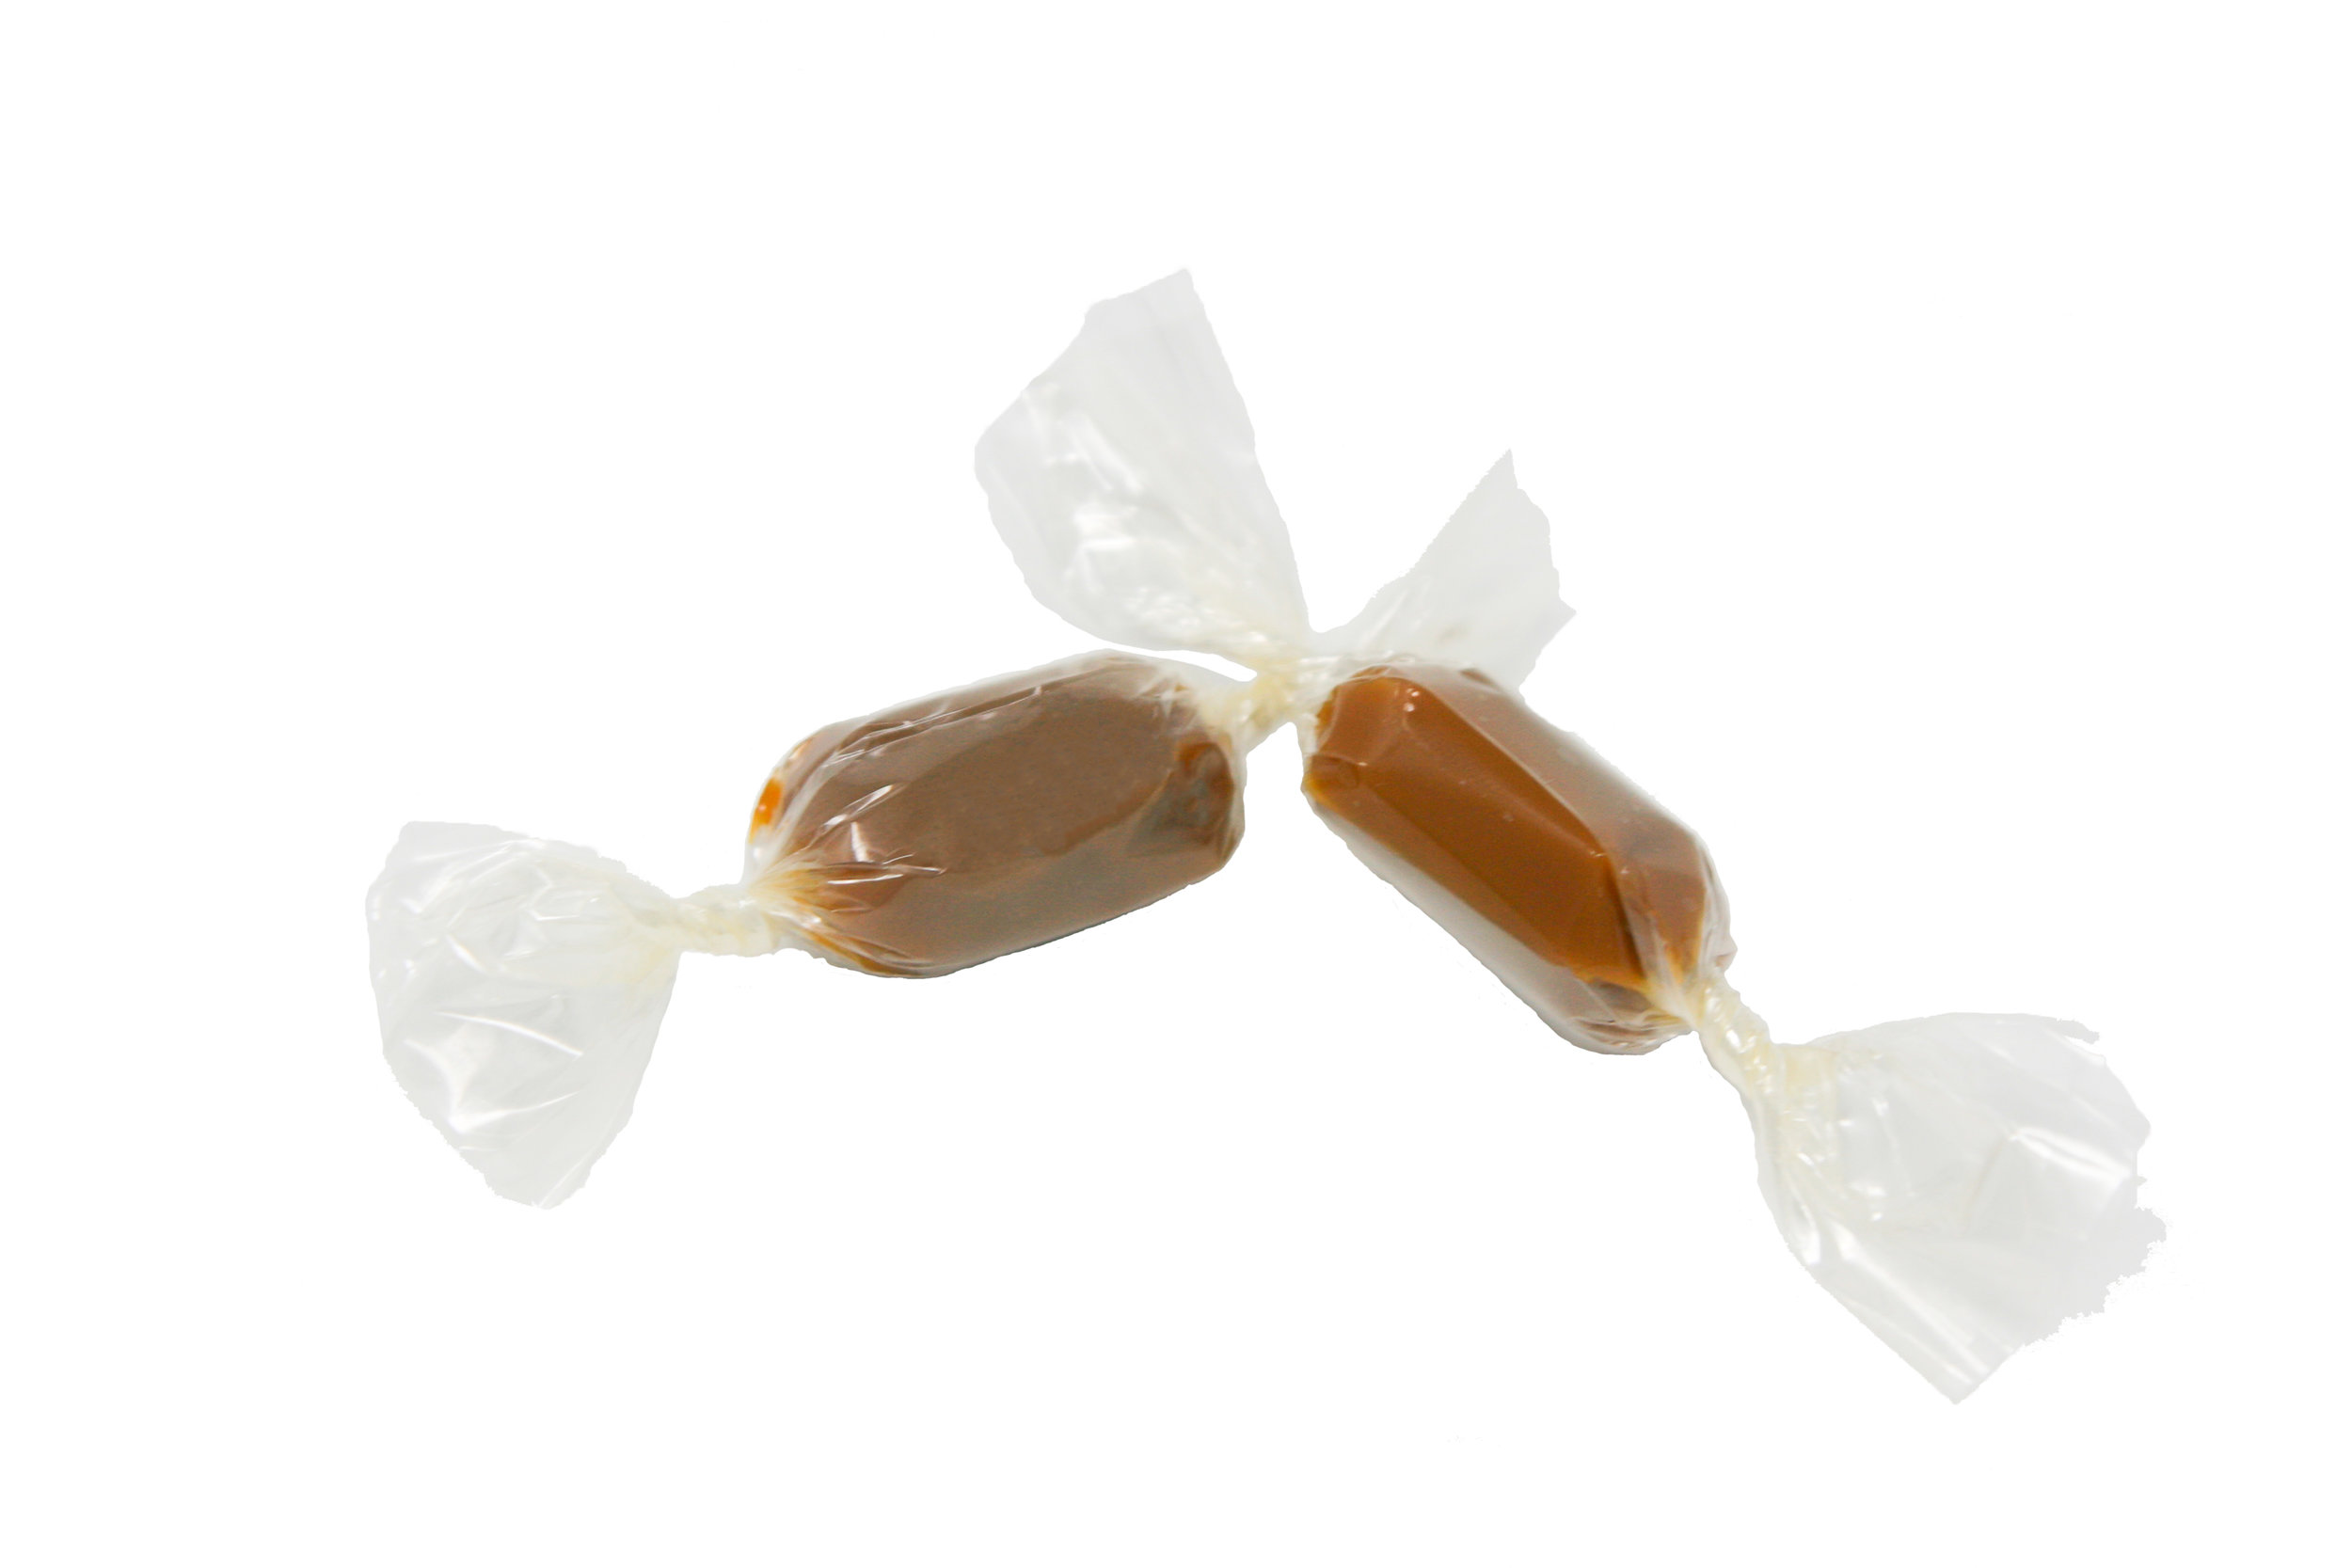 Honey Caramels - Our Honey Caramels are a delicious sweet candy treat for everyone who enjoys indulging their sweet tooth! We've combined the wonderful flavors of honey, butter, sugar, vanilla and sea salt to create a one of a kind cannabis confection you'll continue to crave.